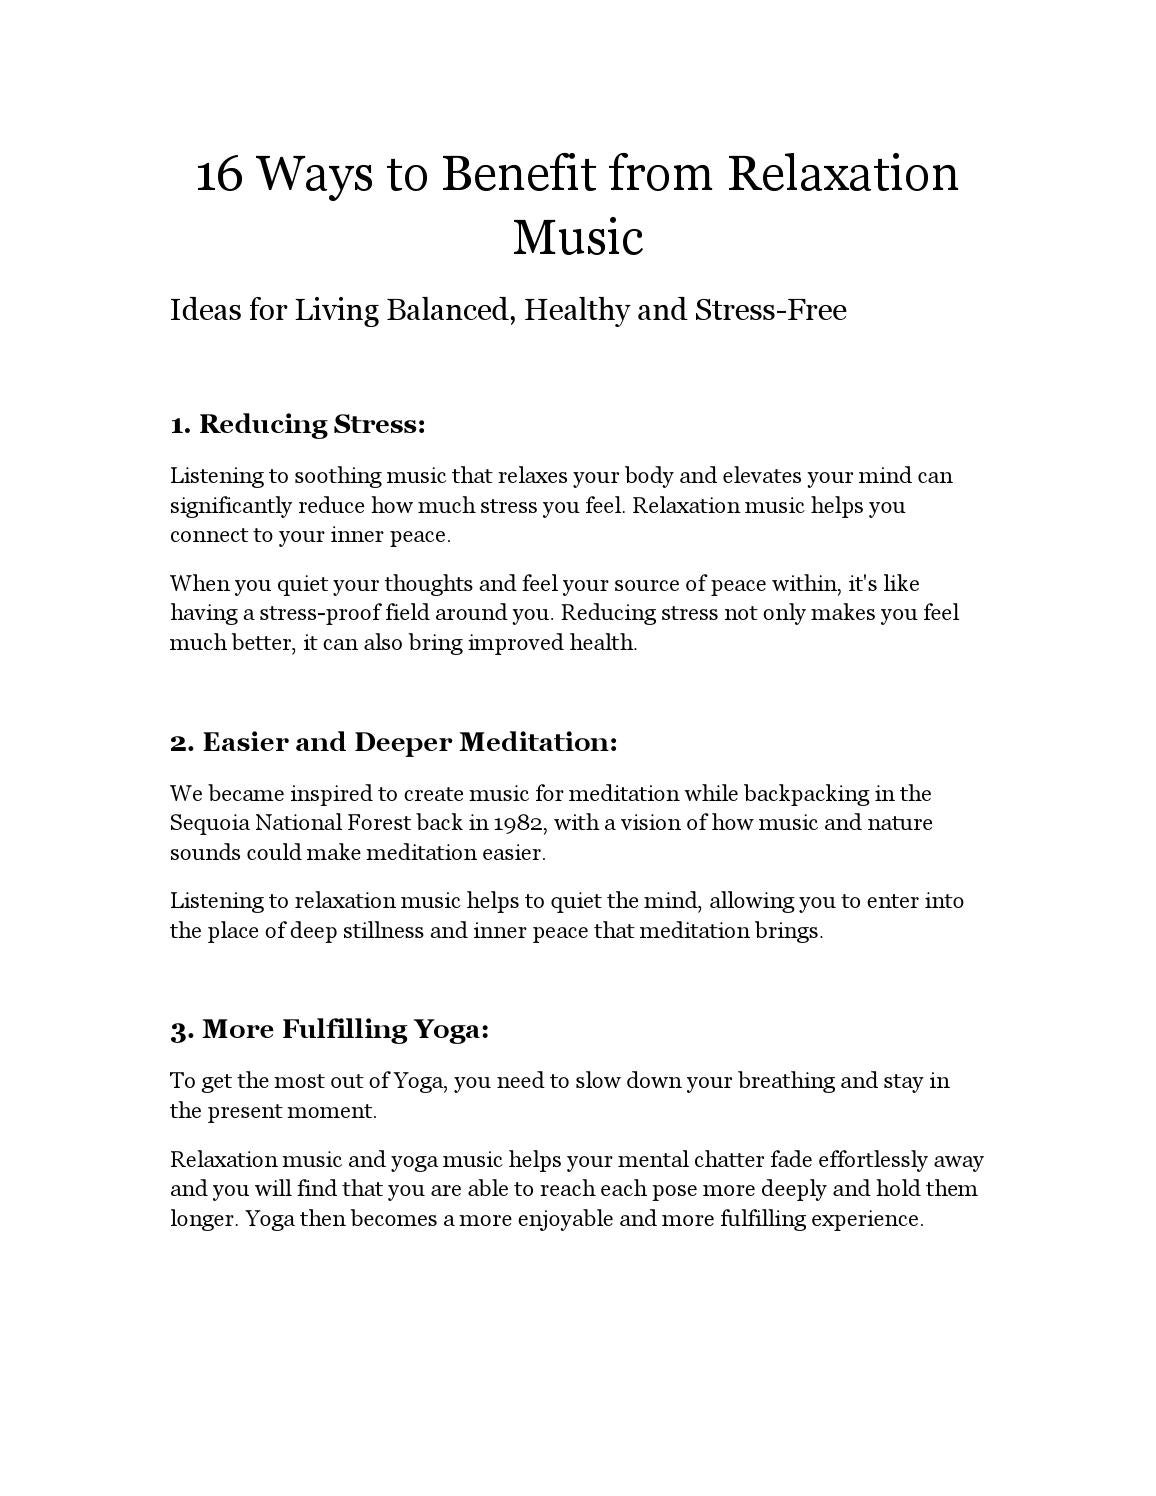 Relaxing meditation music by Zia Abbas - issuu